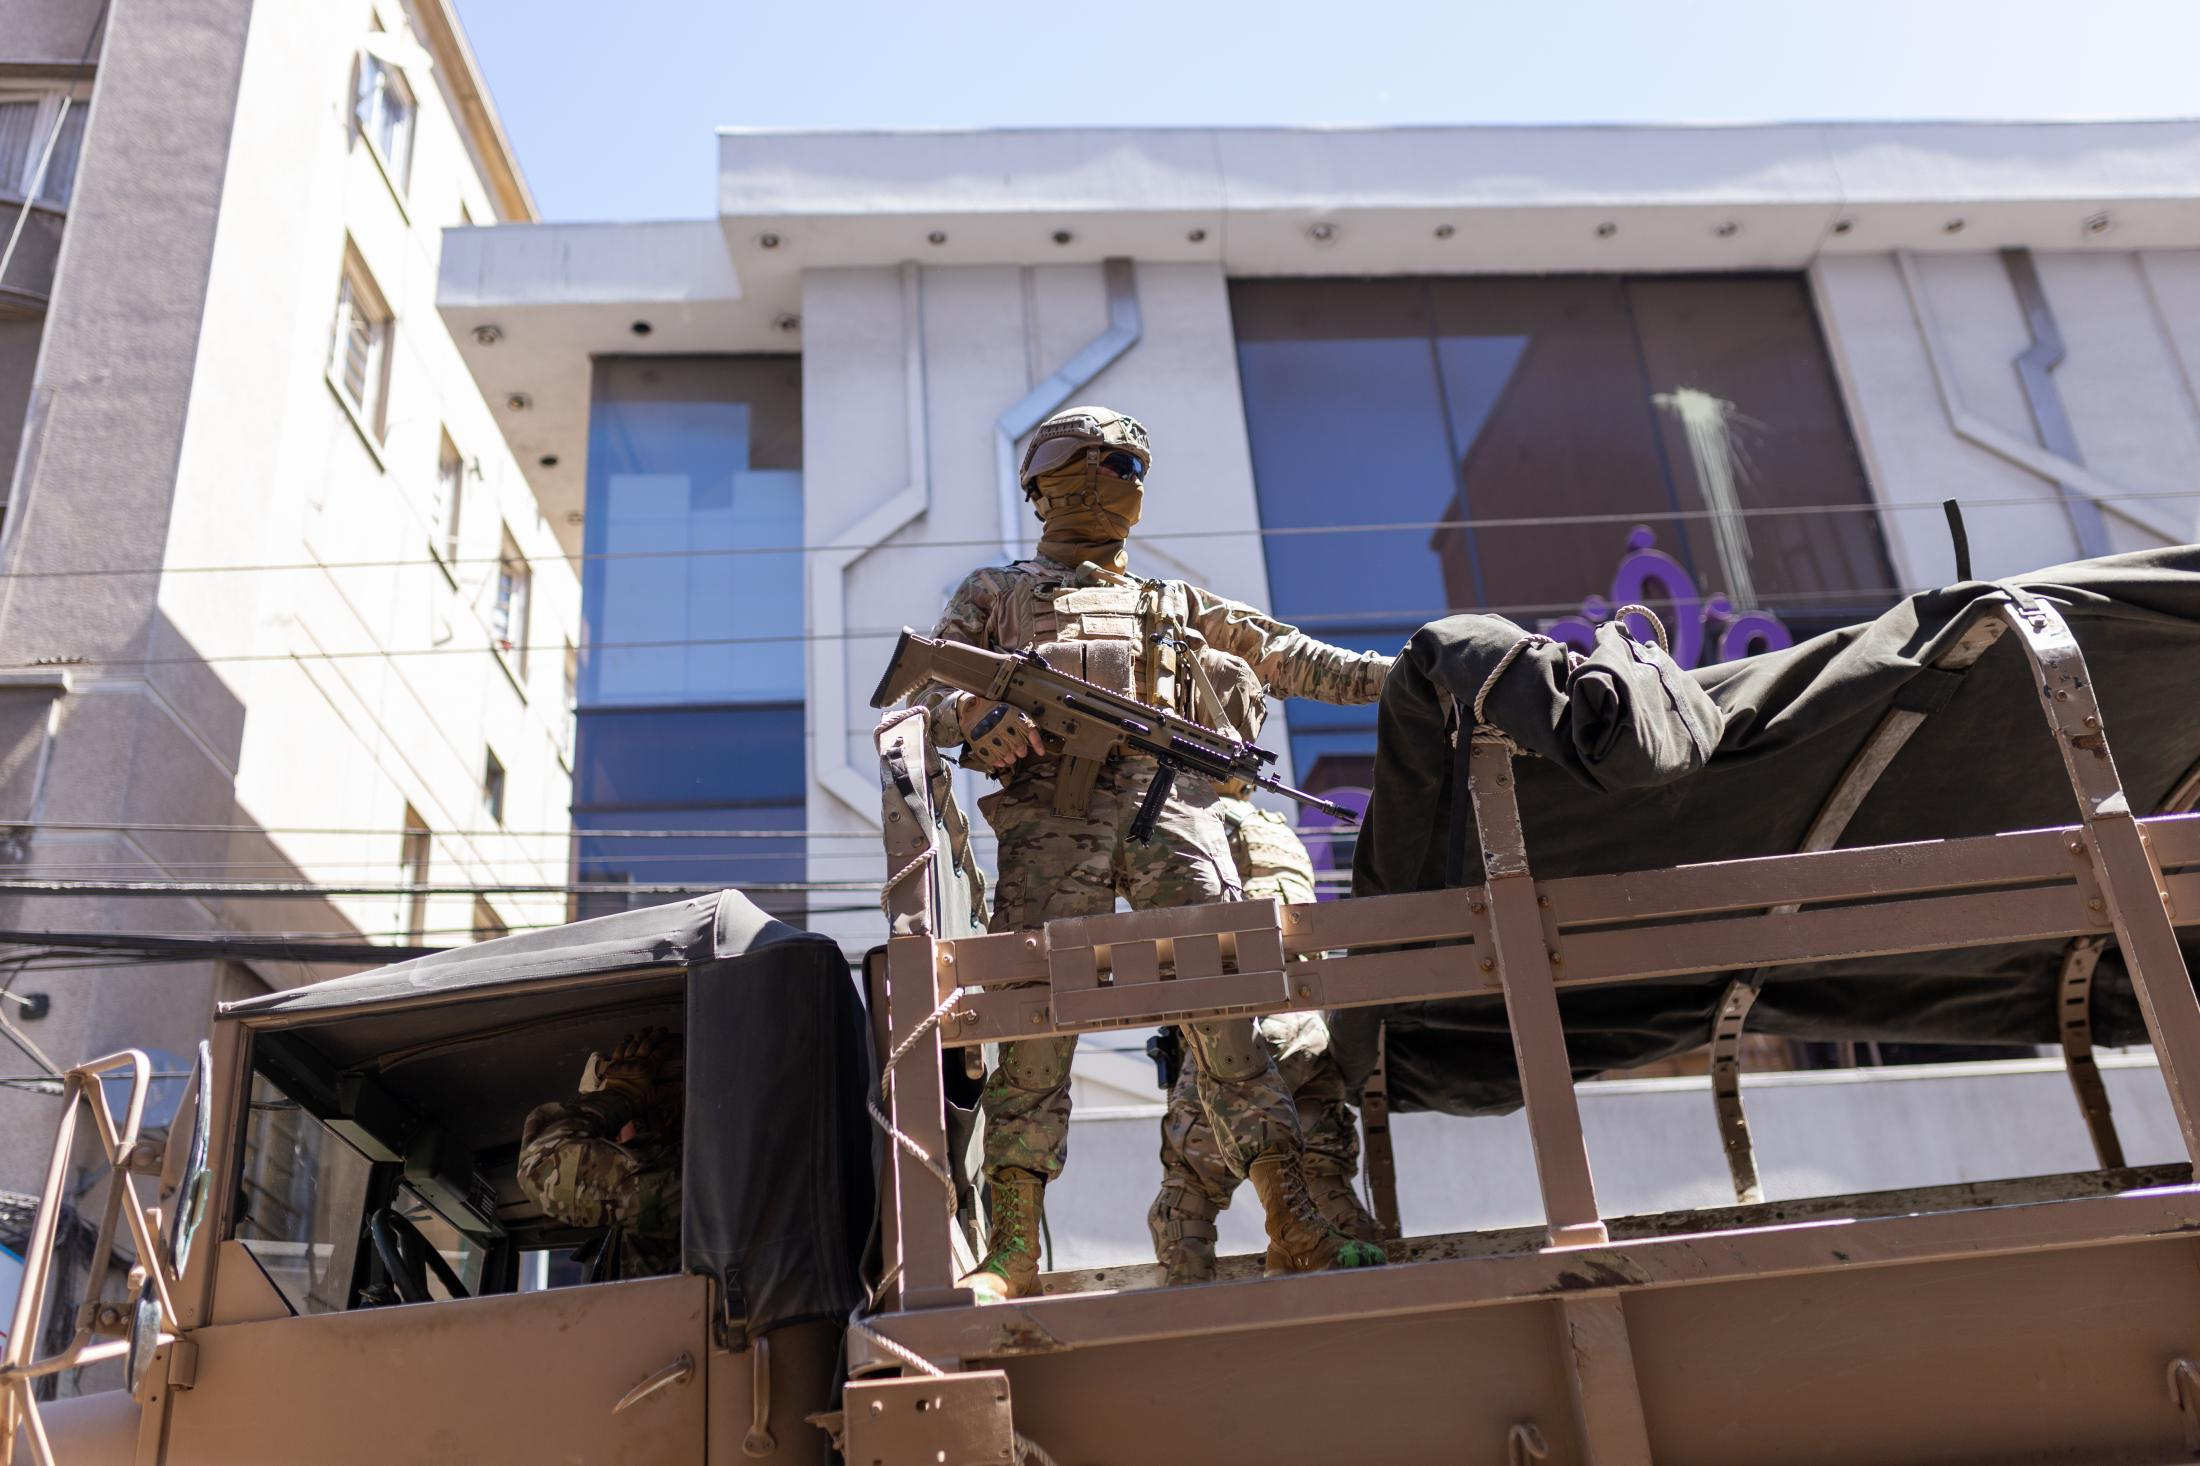 October 22, 2019. Military deployed through the streets of Valparaíso during a day of protest. On October 19, due to the acts of violence and civil unrest, President Piñera declared a state of emergency, establishing a curfew in several cities, as declared for the first time since the return to democracy.